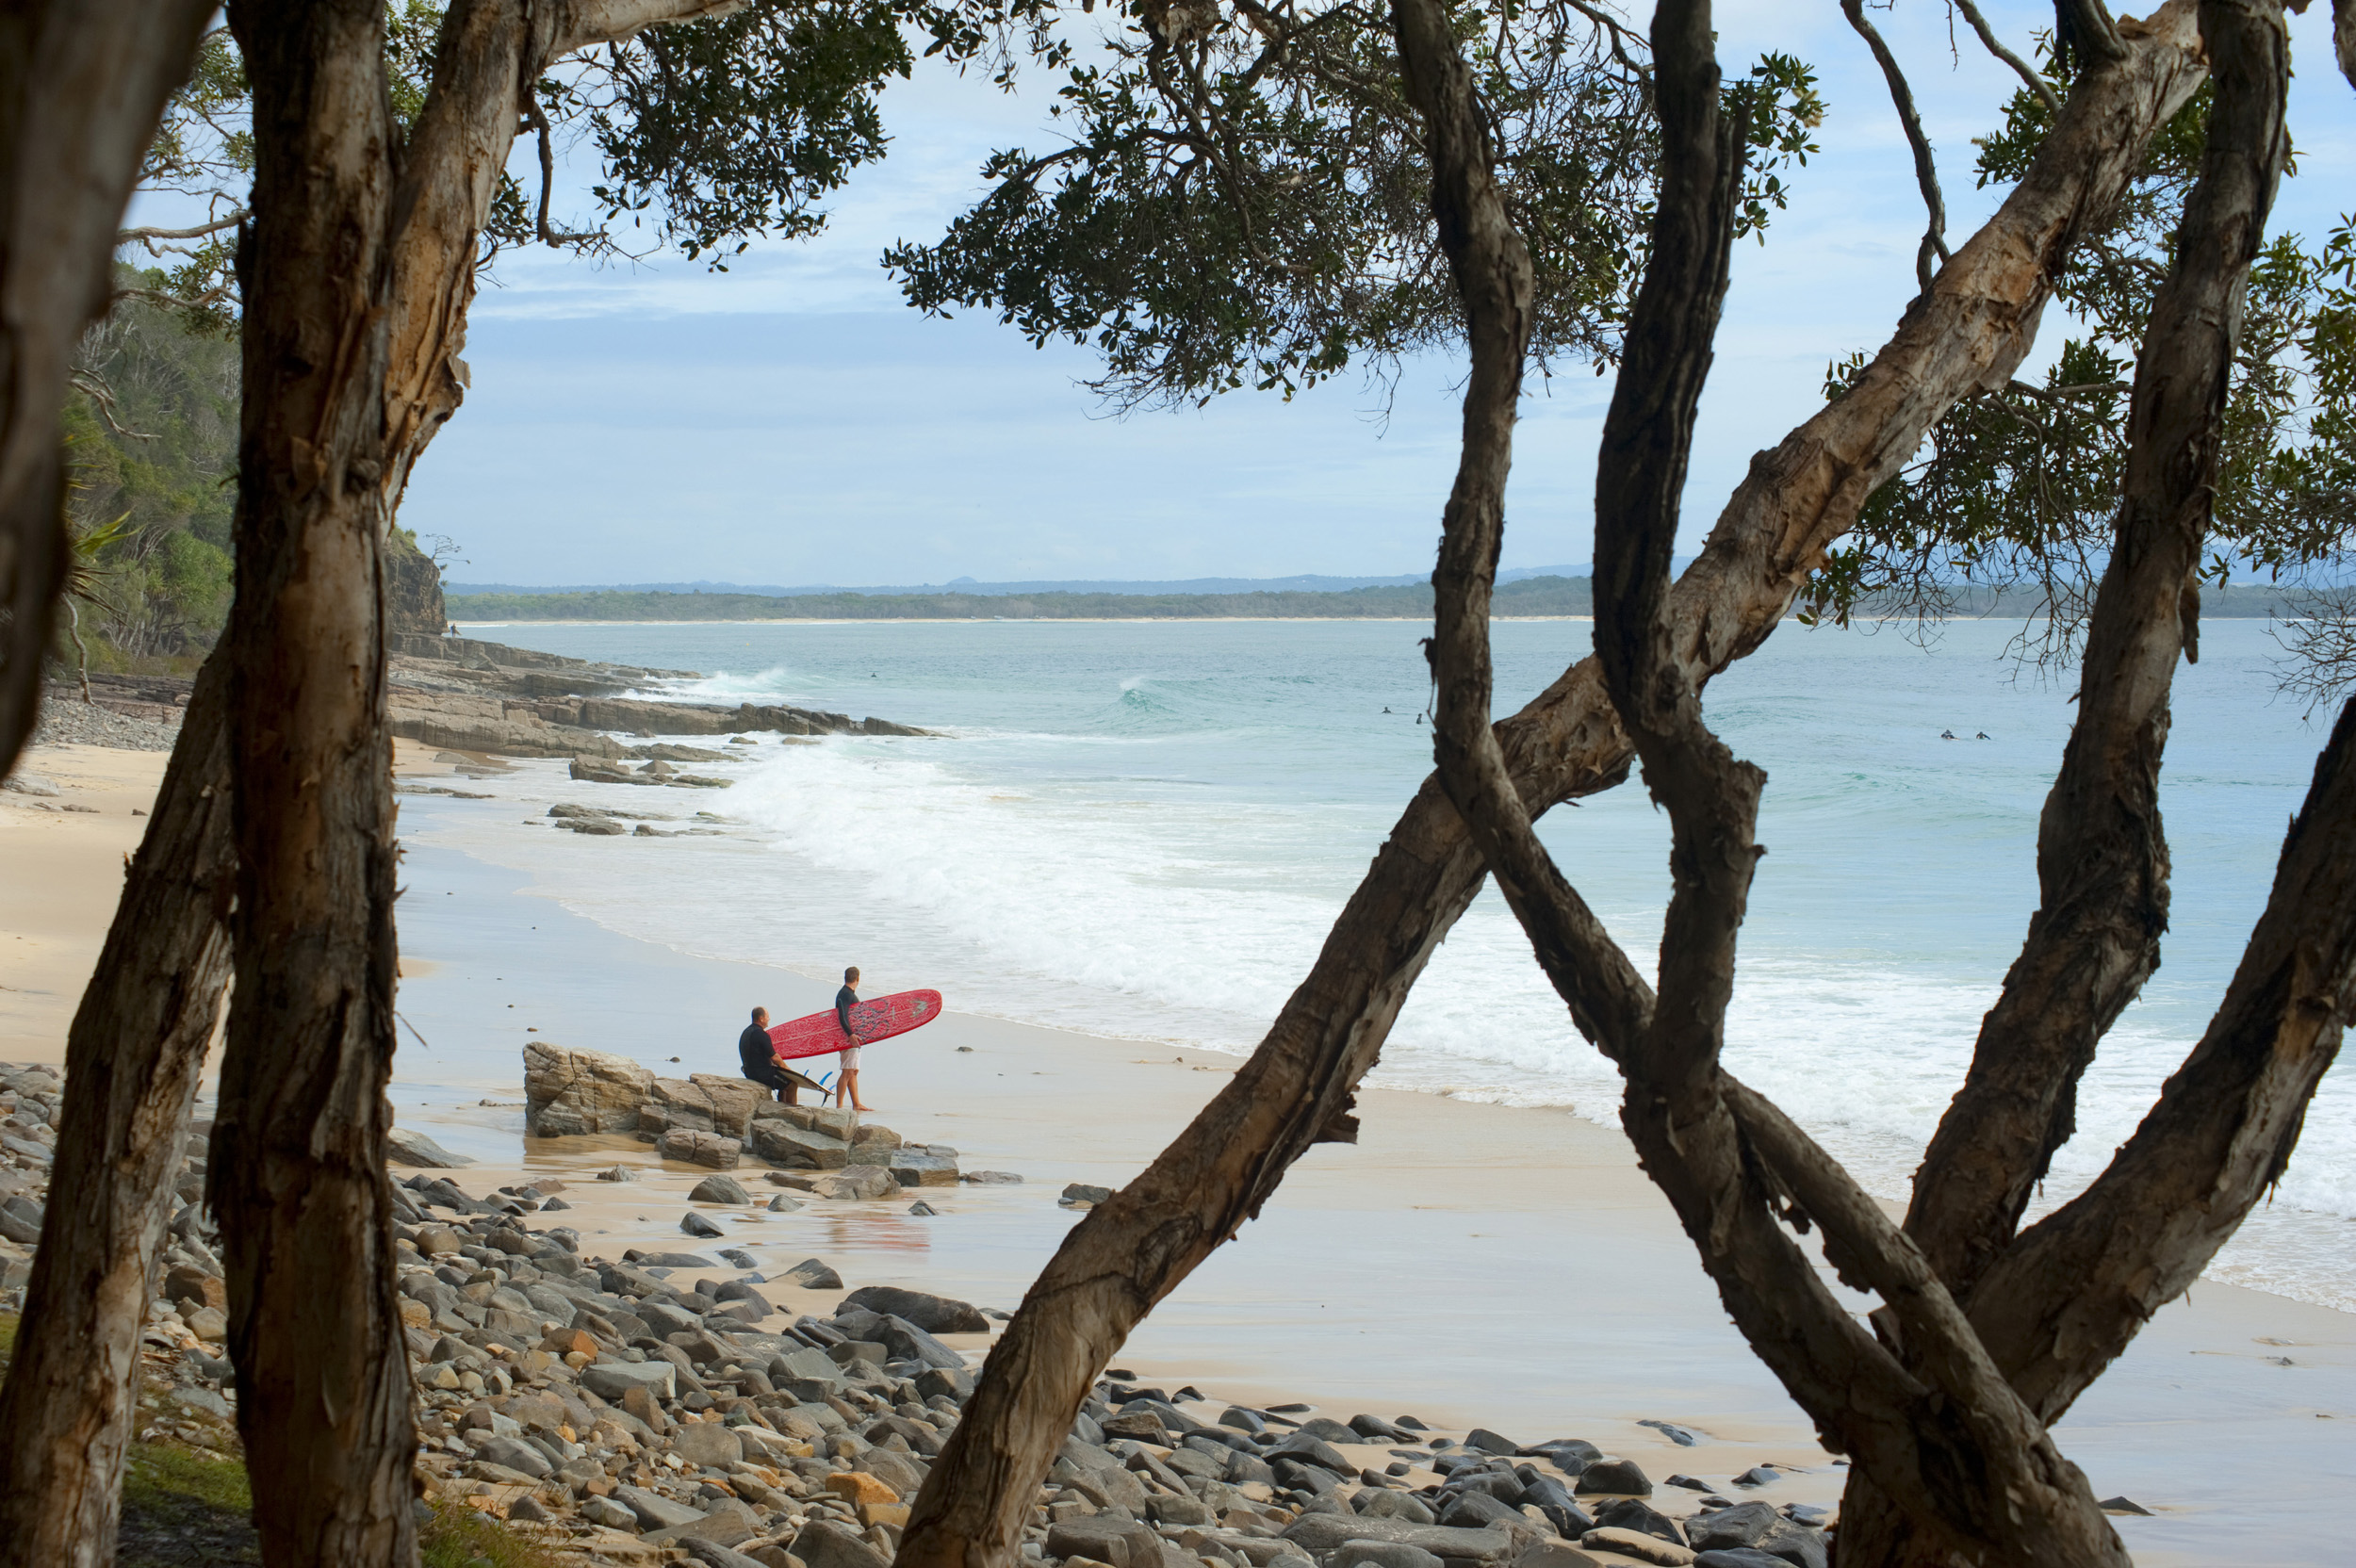 View between tree trunks onto the sandy beach with surfers carrying their surfboards at Granite Bay, Noosa , Queensland, Australia